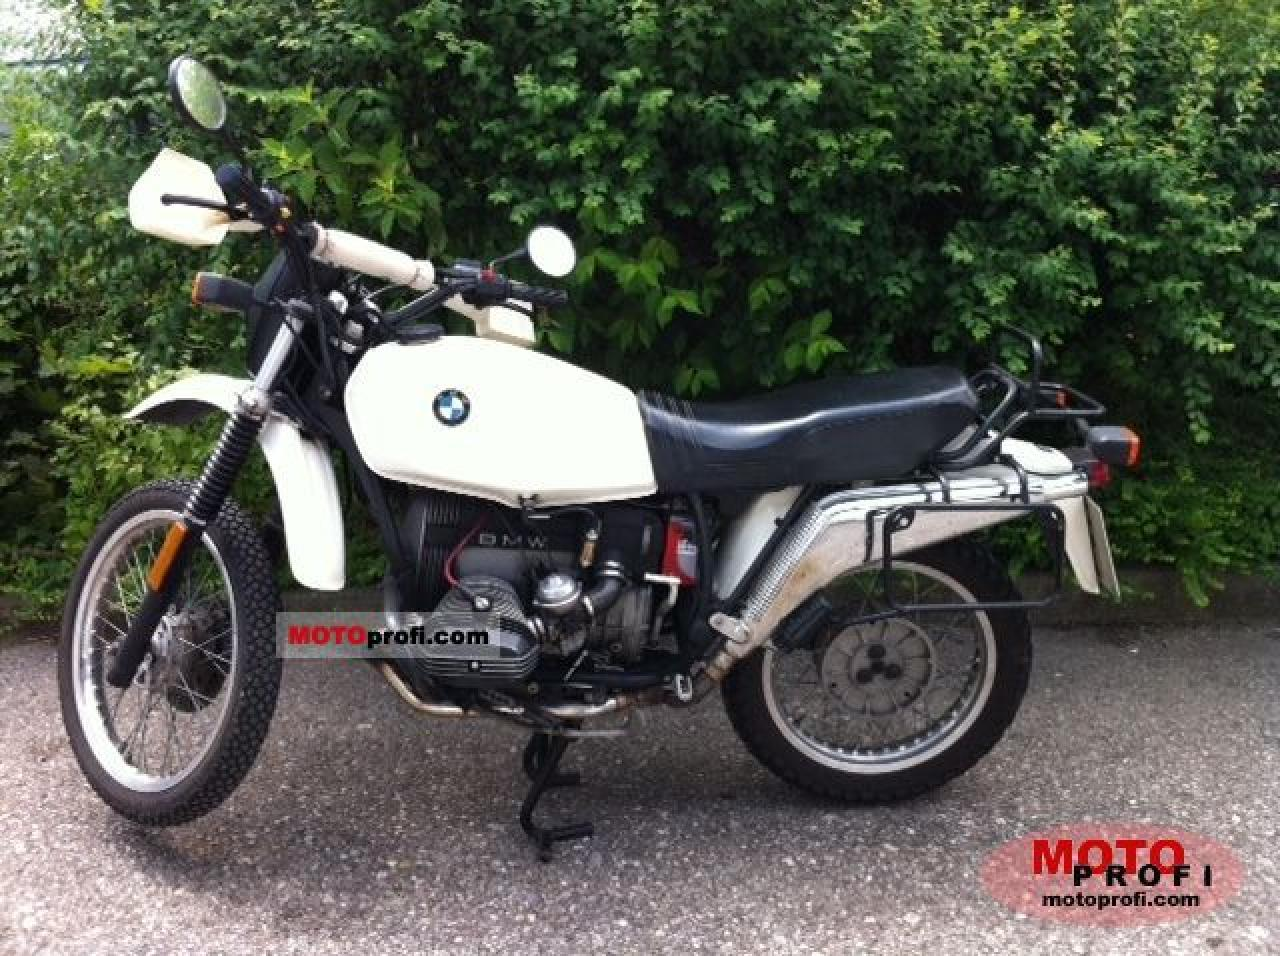 BMW R65 (reduced effect) 1991 images #77440